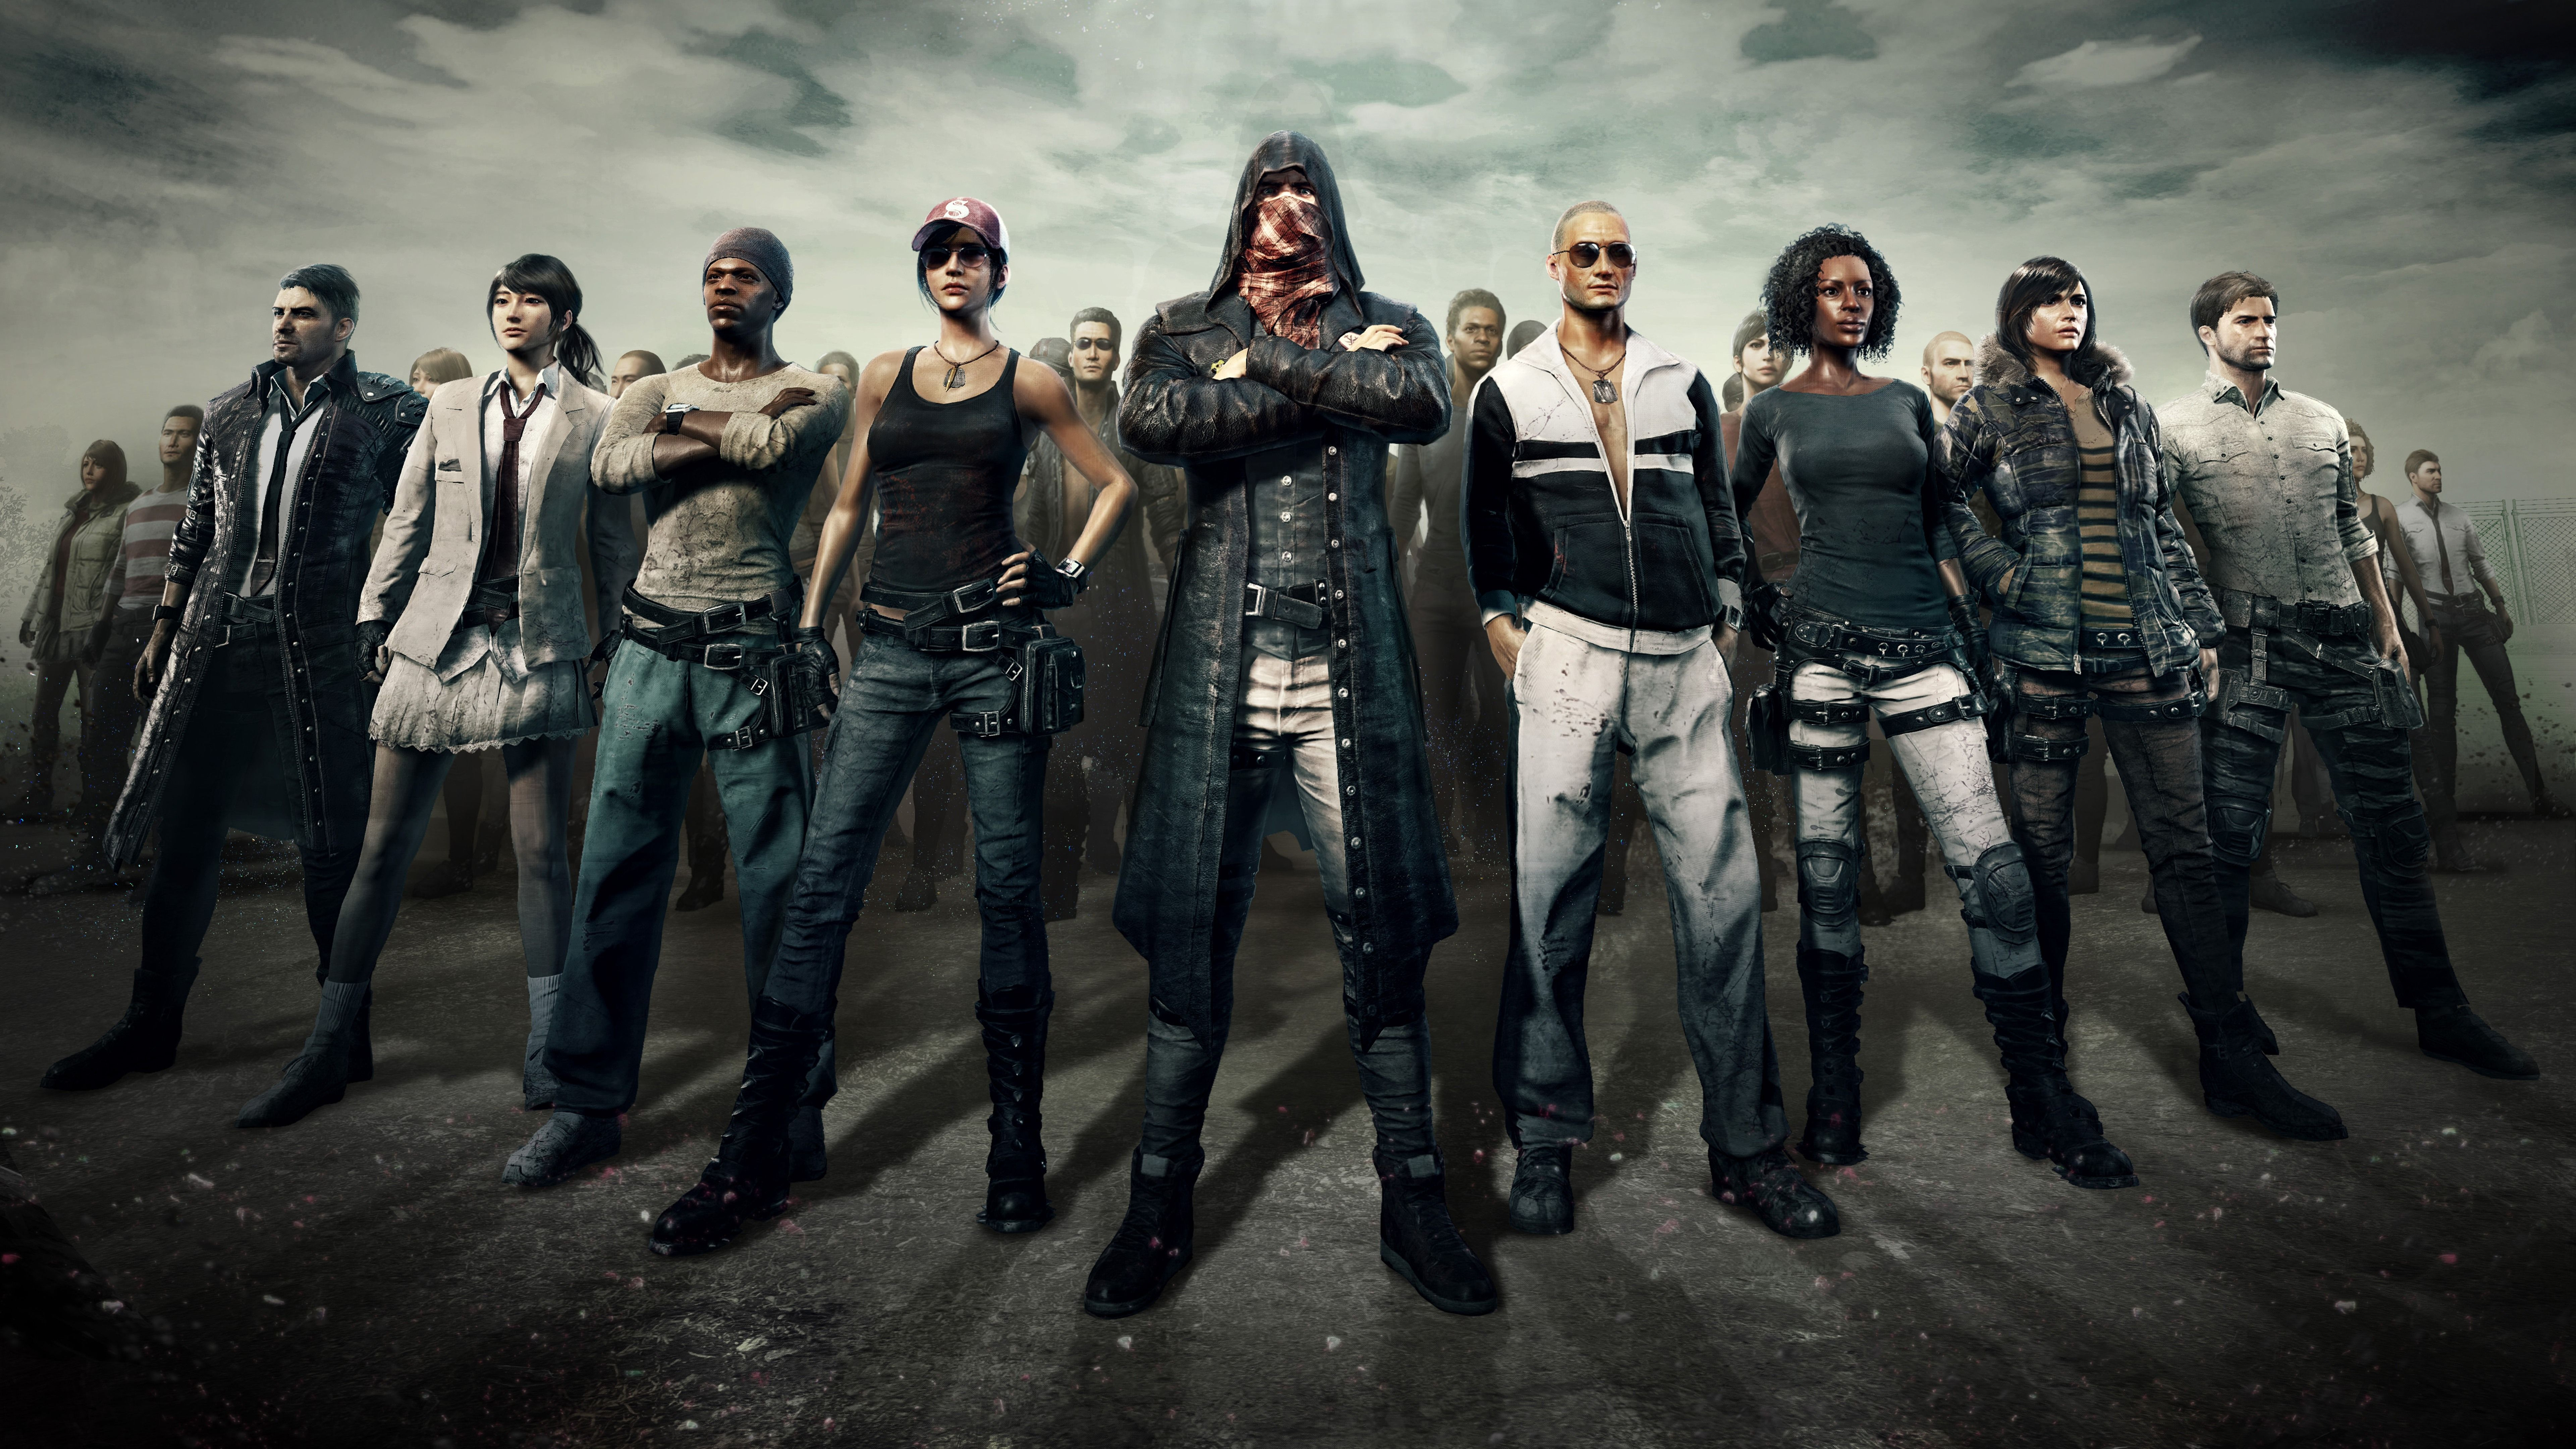 Pubg Playerunknown S Battlegrounds Characters 8k Wallpaper Playerunknown S Battlegrounds Pubg 8k Wallpaper Gaming Wallpapers Epic Games Netflix Movies